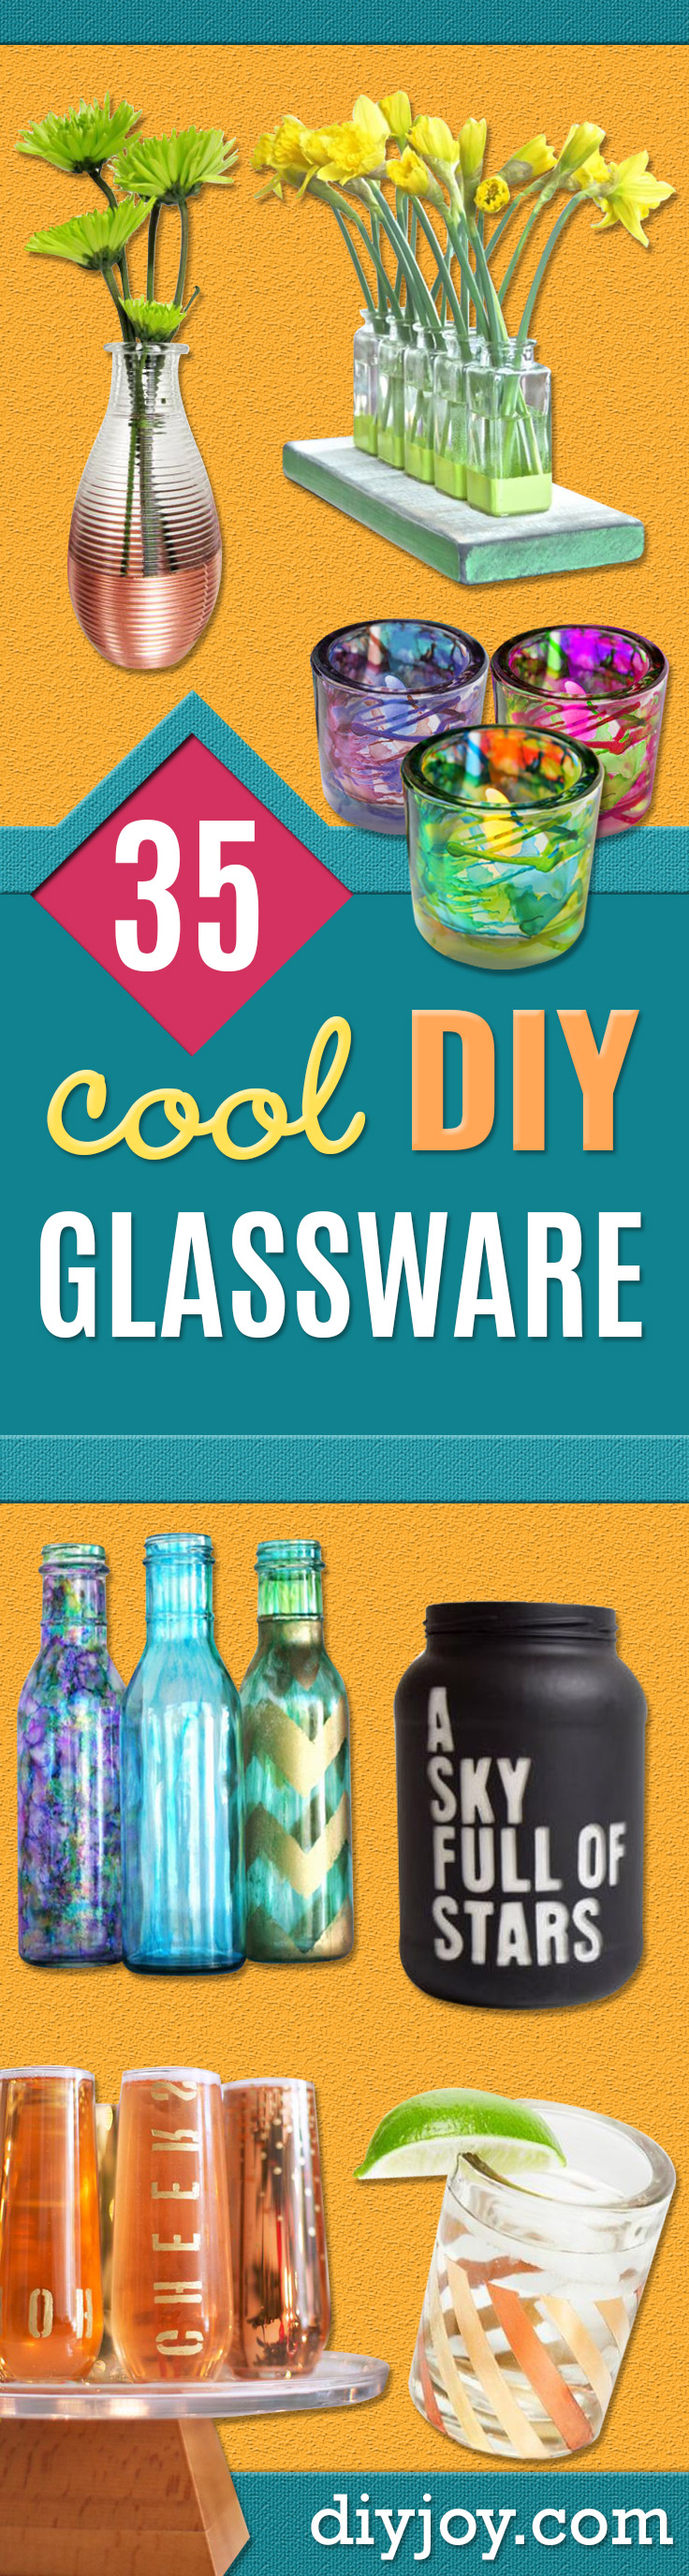 DIY Glassware - Cool Bar and Drink Glasses To Make Decorate for Creative Serving Glass Ideas - Mugs, Cups, Decanters, Pitchers and Glass Ware Projects - Paint, Etch, Etching Tutorials, Dotted, Sharpie Art and Dishwasher Safe Decorating Tips - Easy DIY Wedding Gift Ideas for Him and Her